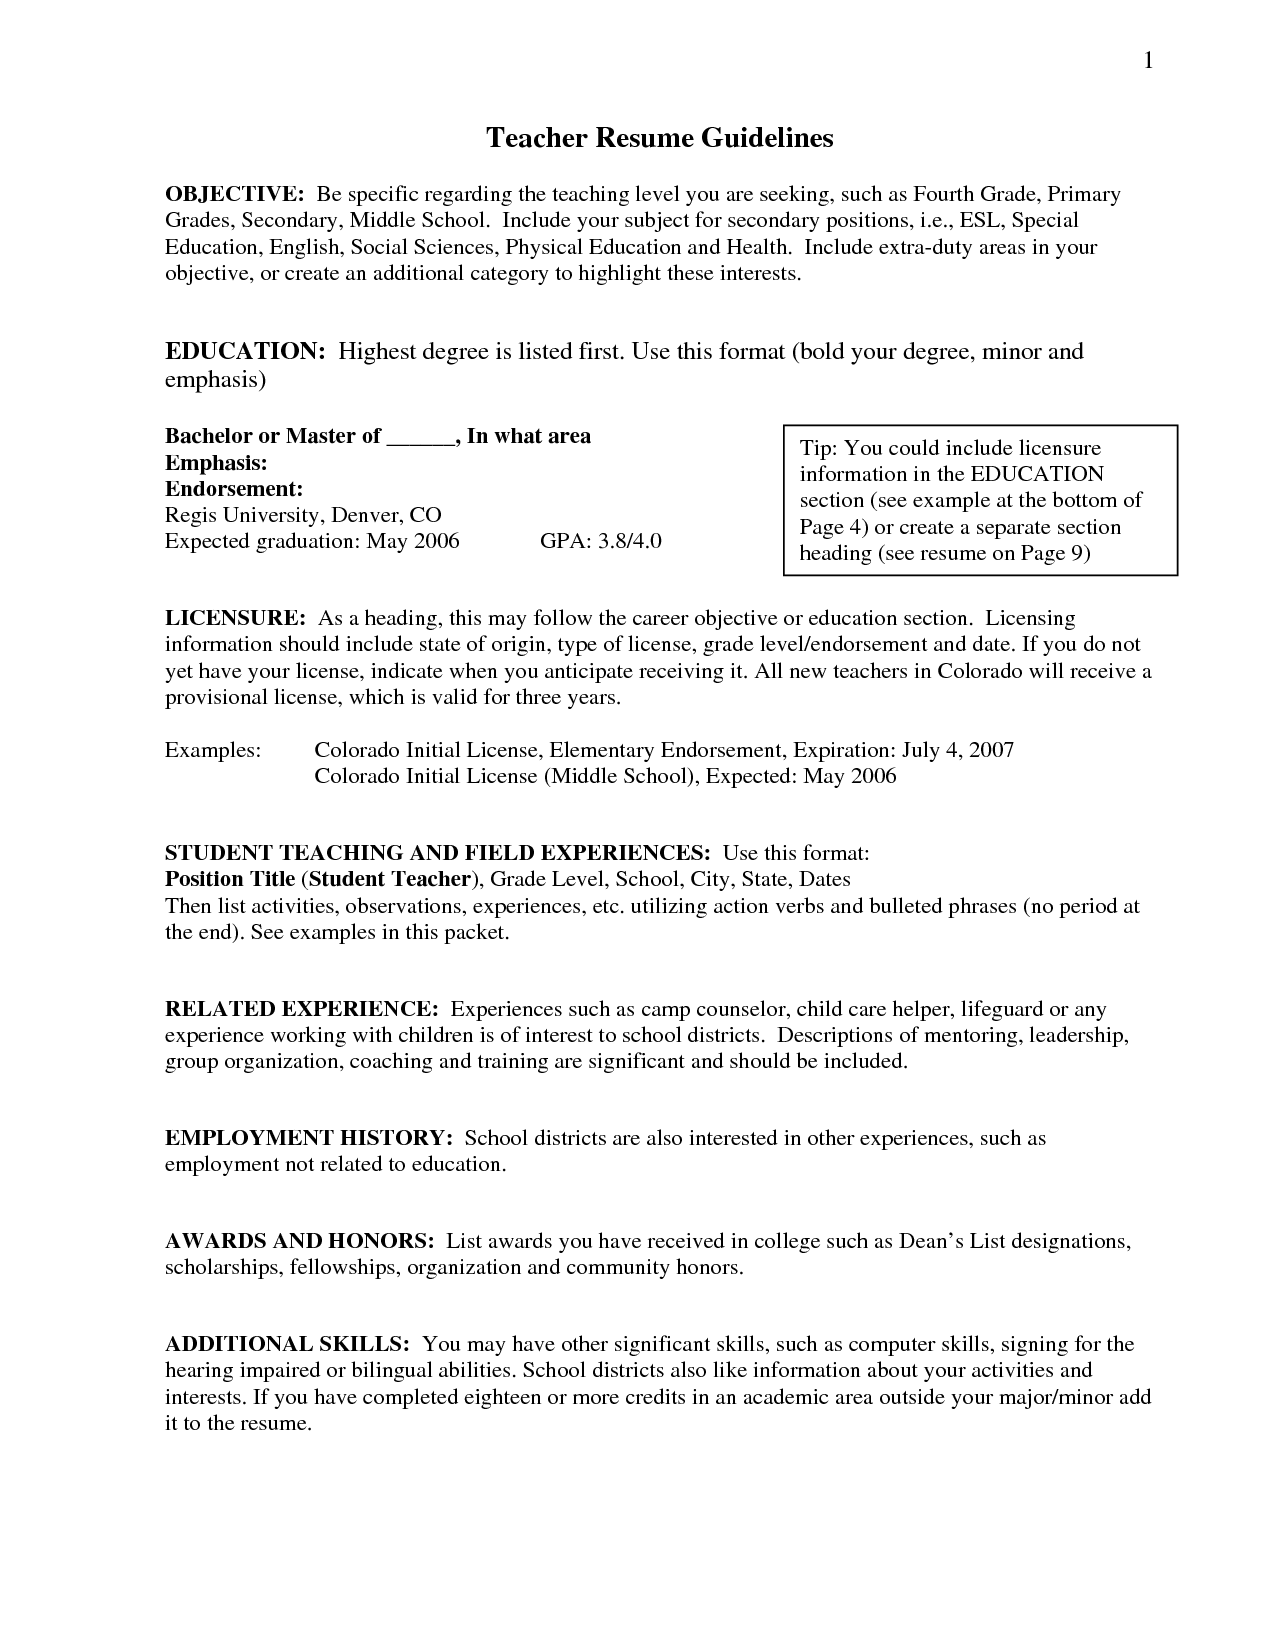 resume objective statement for teacher httpwwwresumecareerinfo - Education Resume Objectives